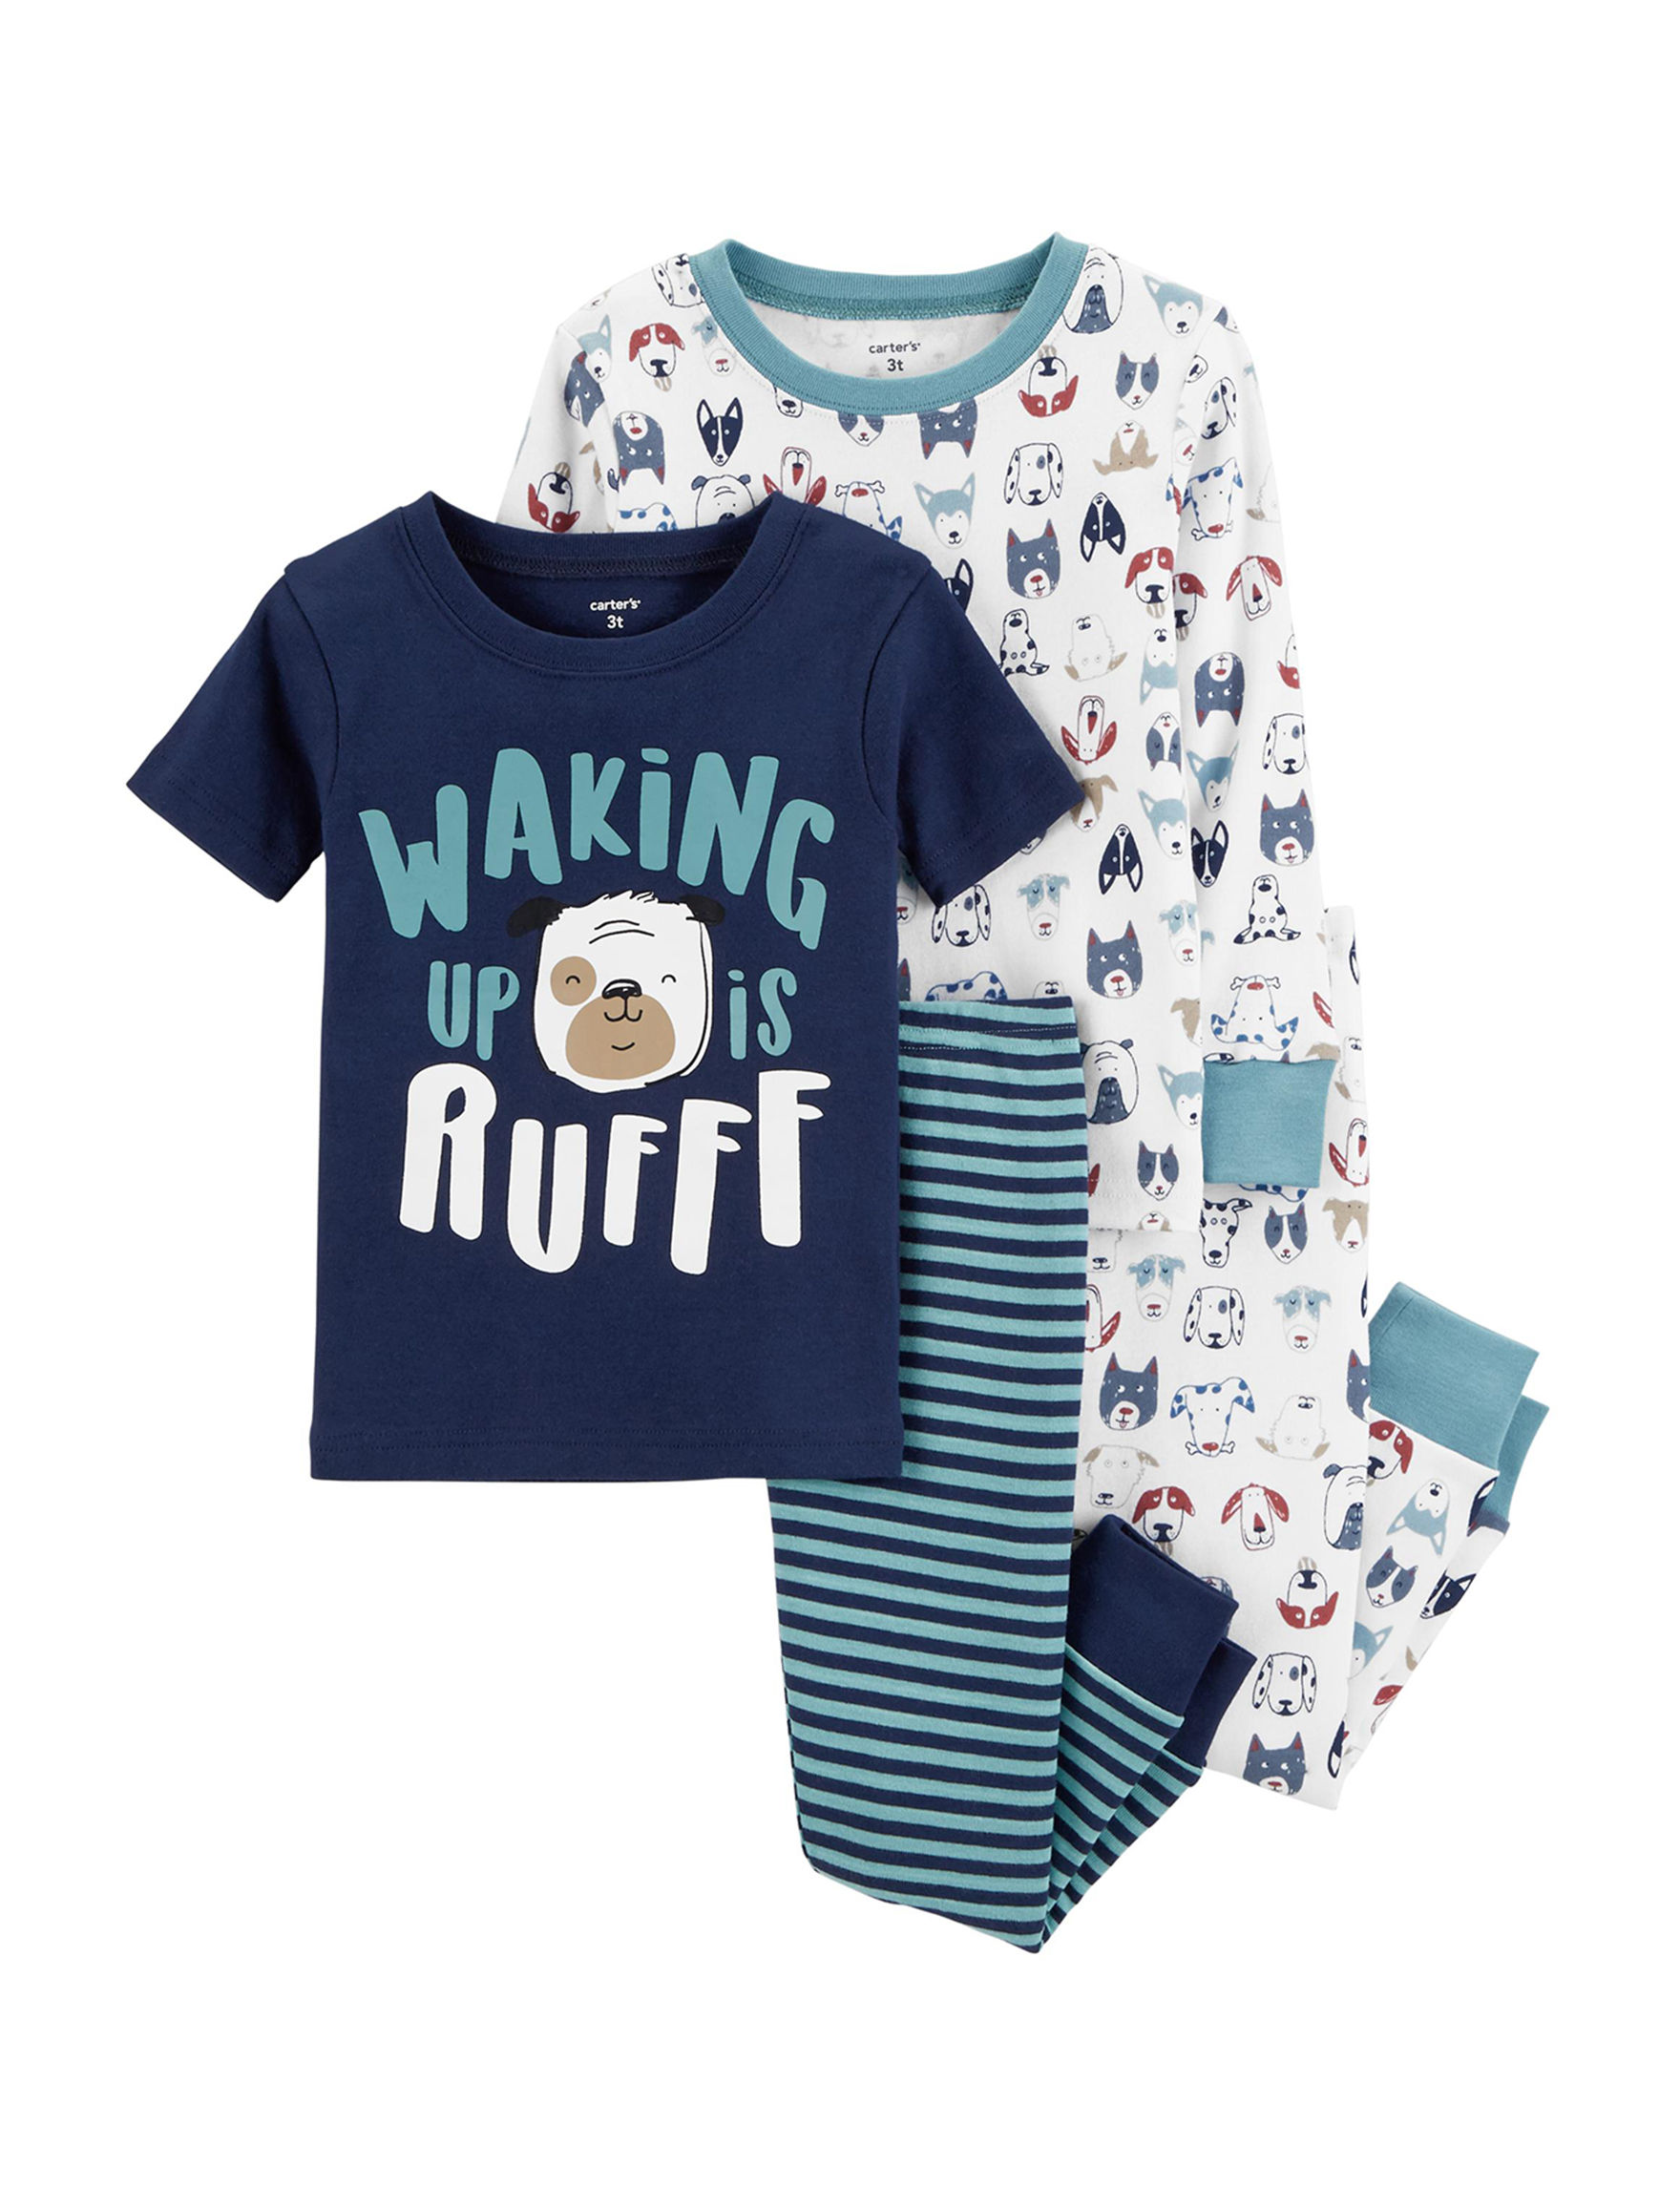 Carter's Blue/White Stripe Pajama Sets